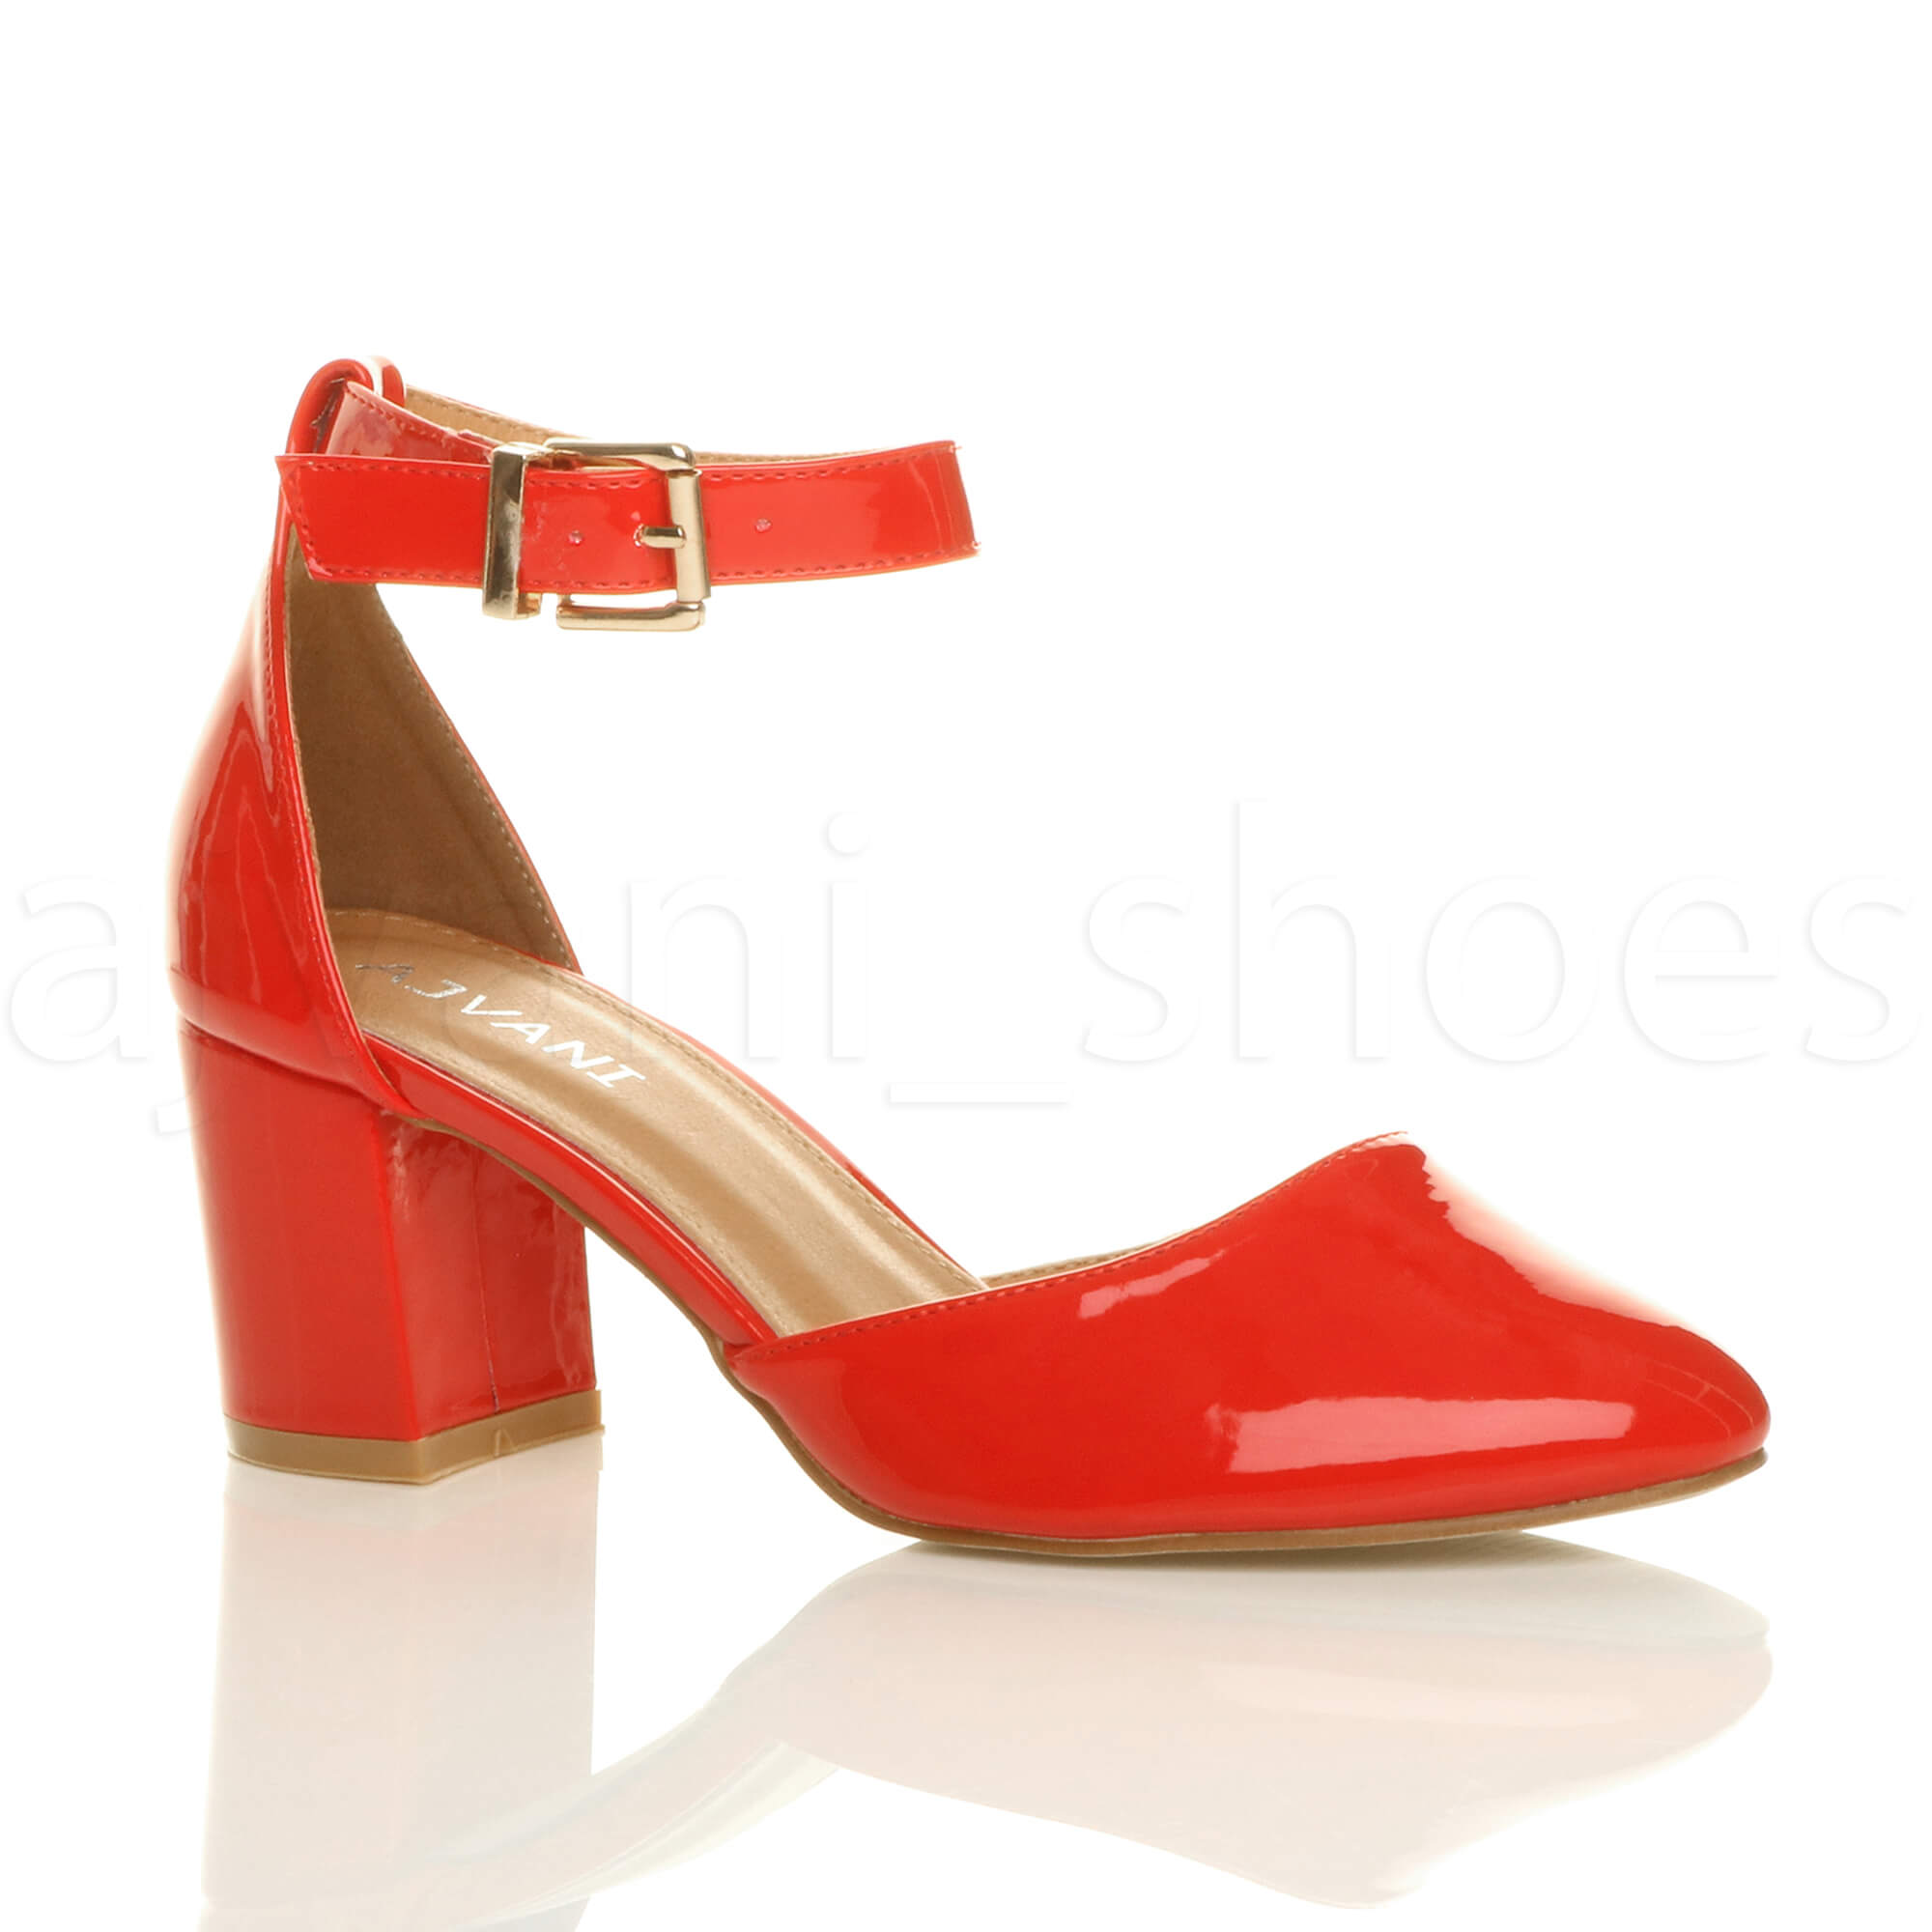 Shoes With Ankle Strap With Low Heel